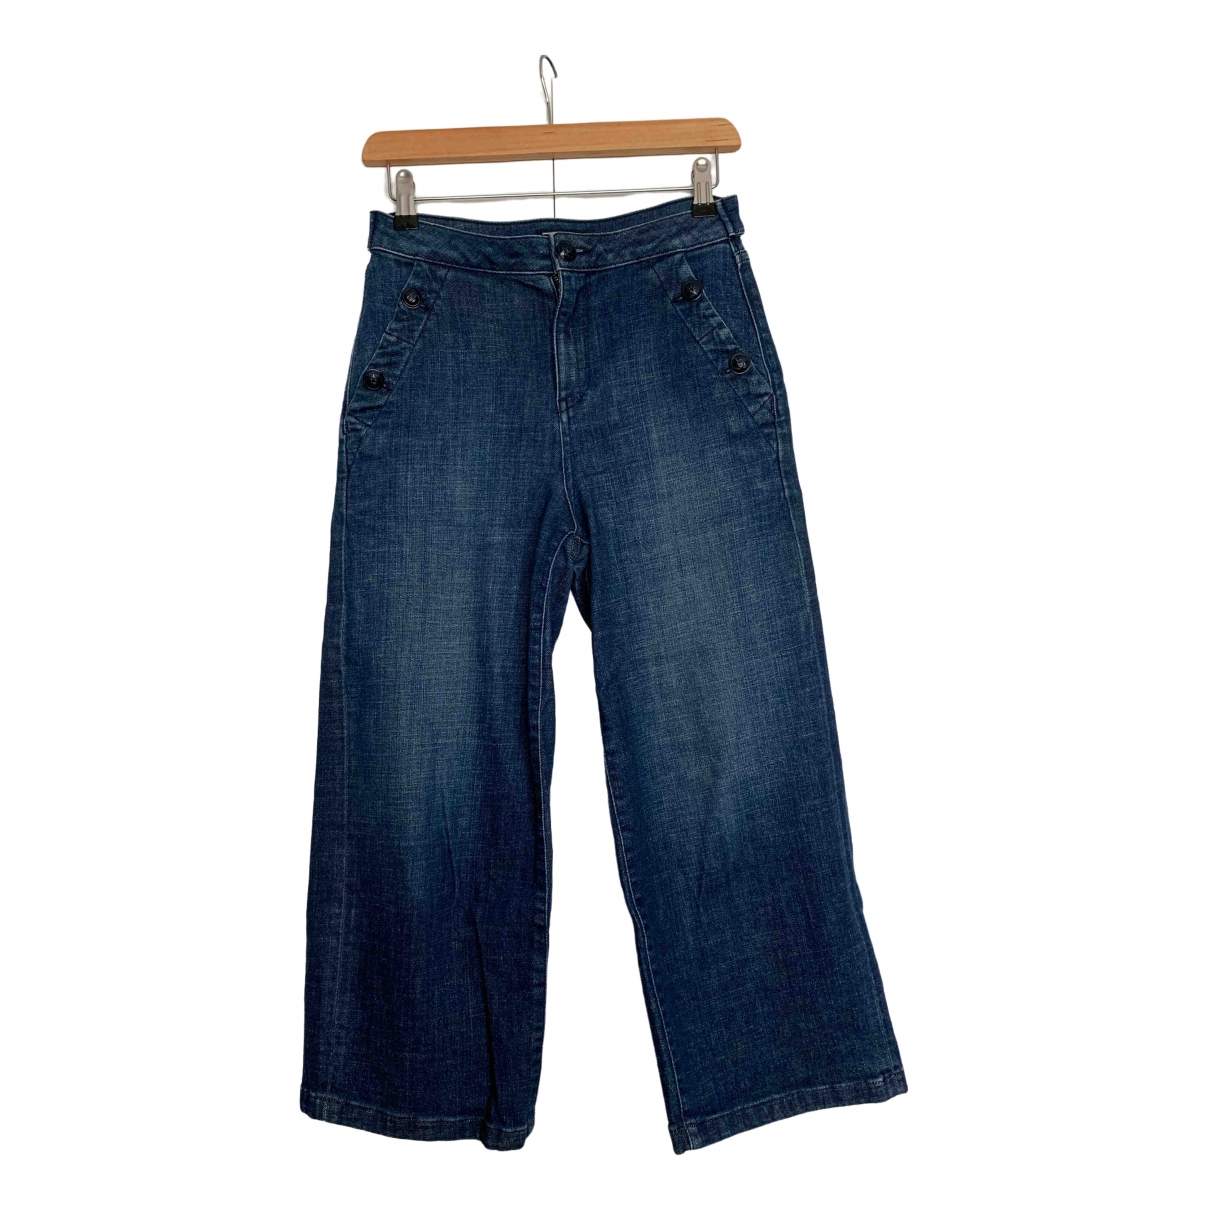 Tommy Hilfiger \N Blue Cotton - elasthane Jeans for Women 26 US